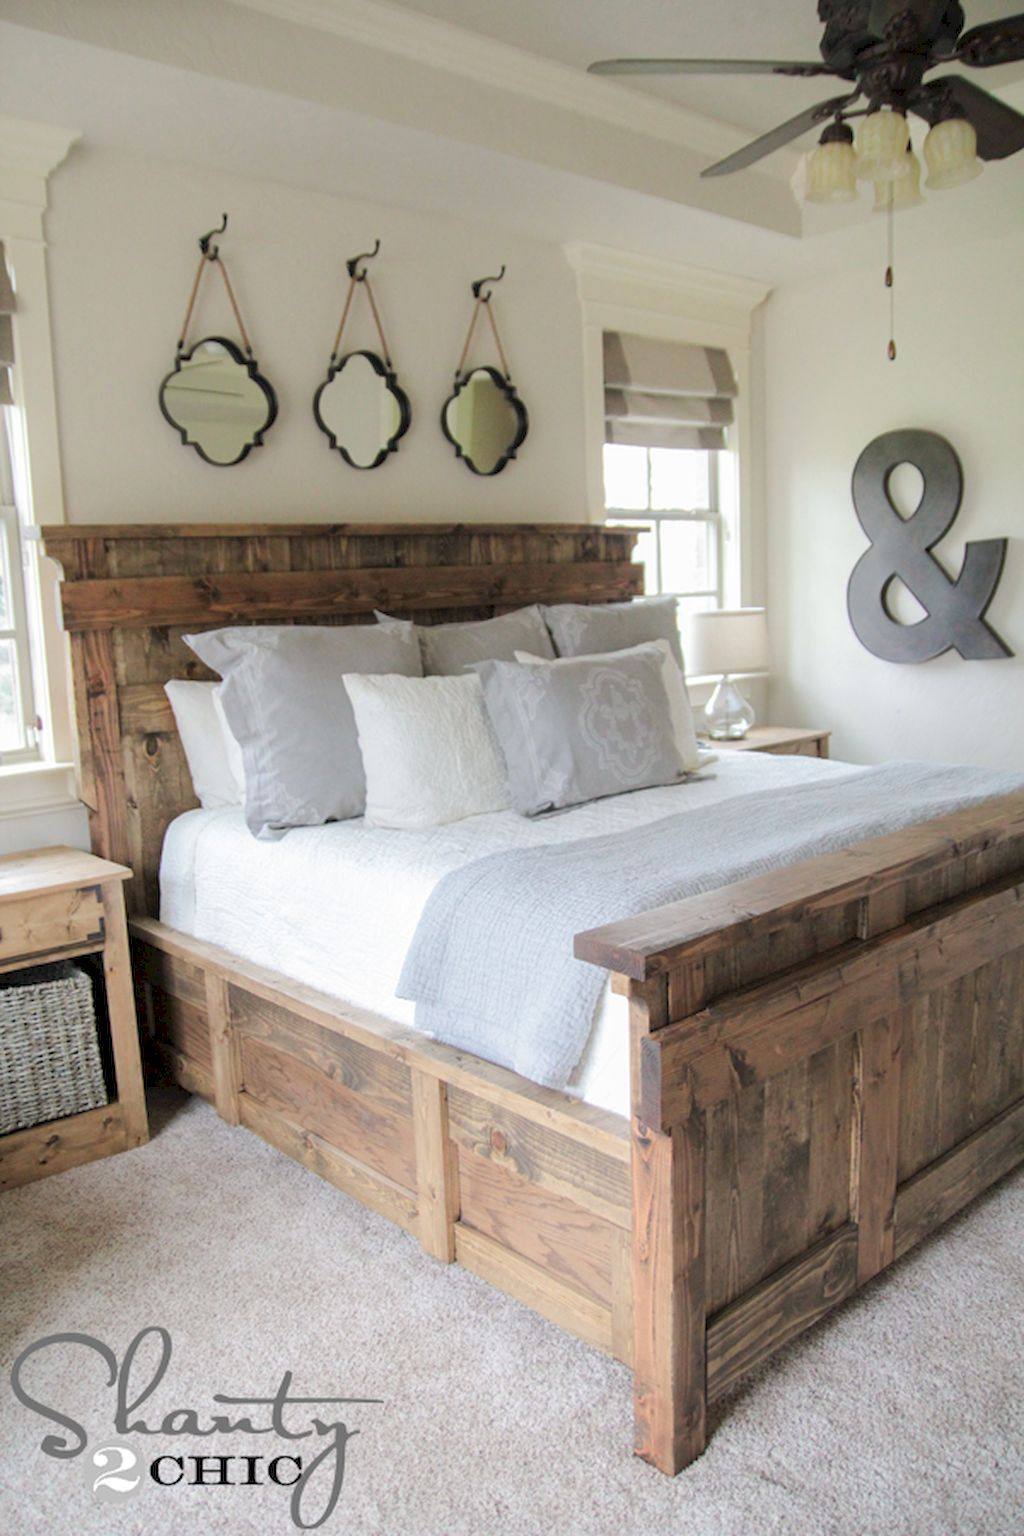 51 Rustic Farmhouse Style Master Bedroom Ideas Rustic